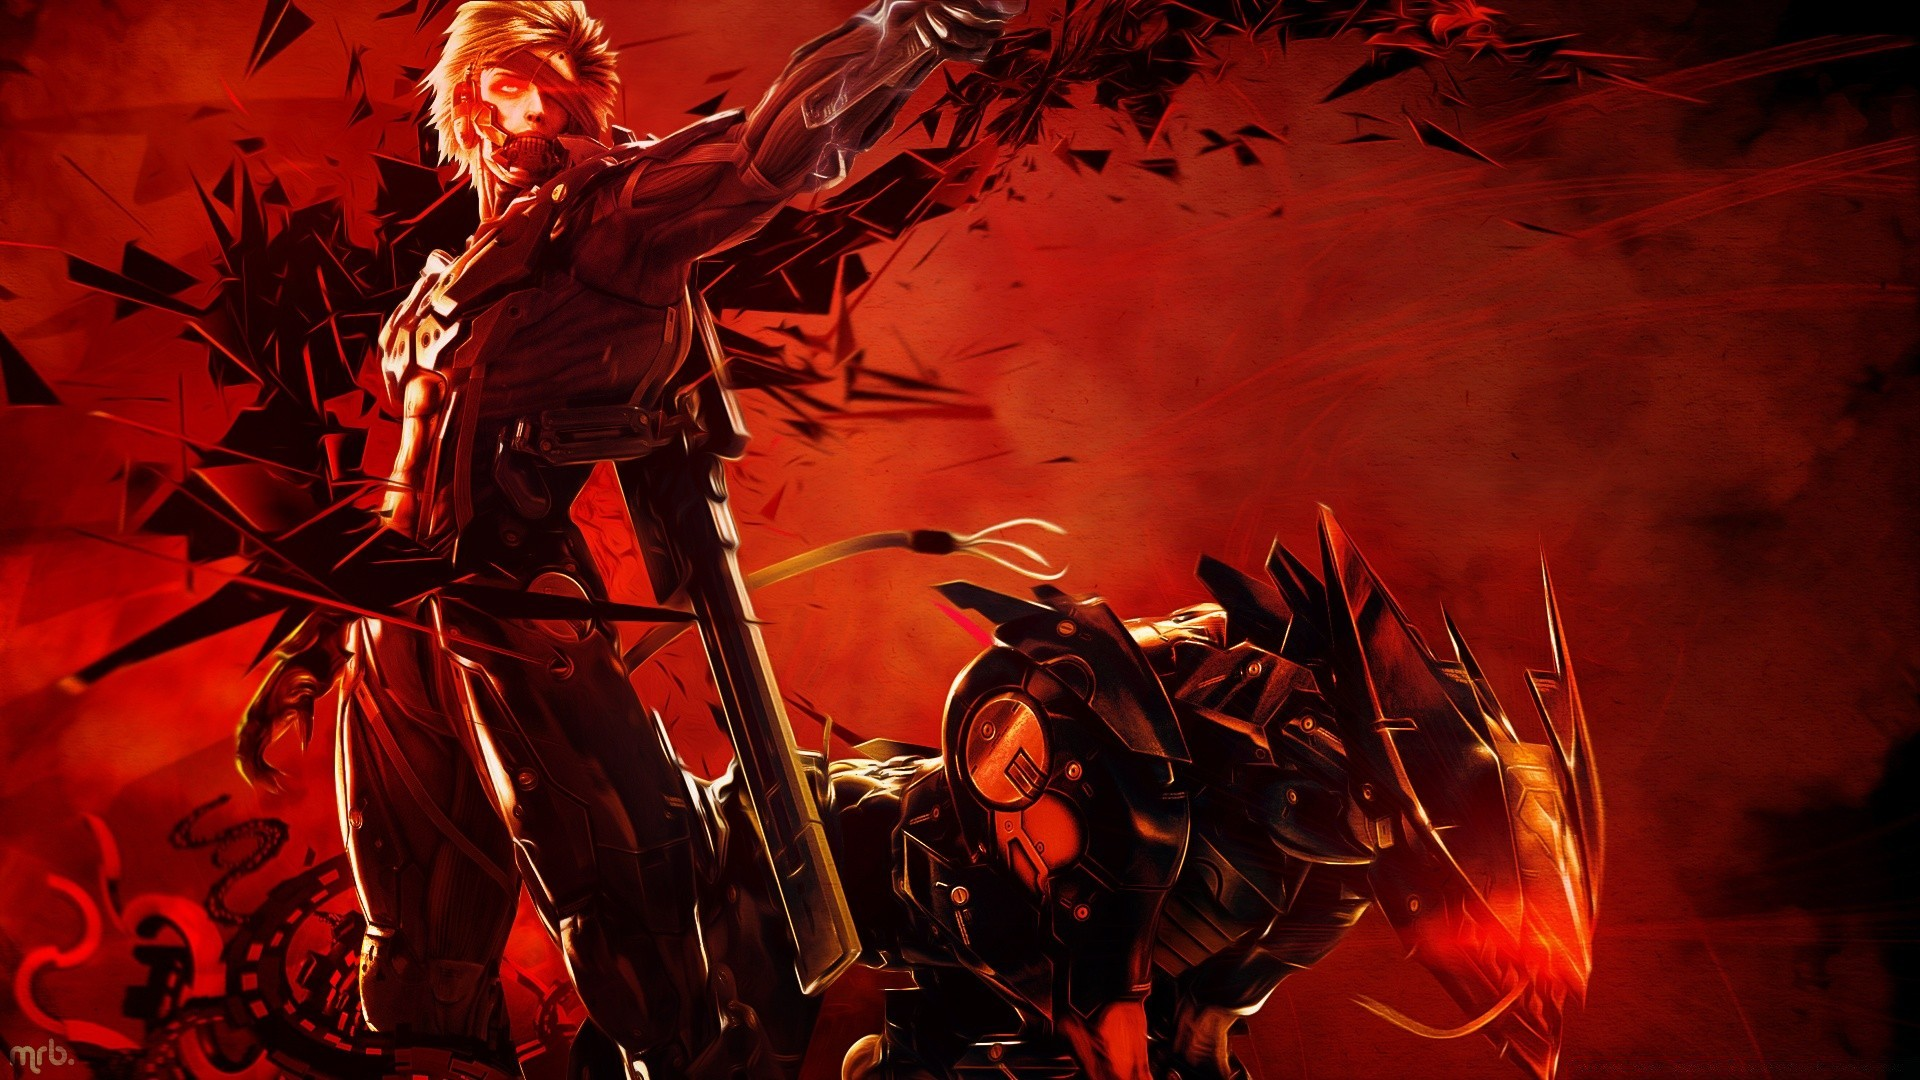 Metal gear rising revengeance wallpaper 2 android wallpapers for free voltagebd Choice Image